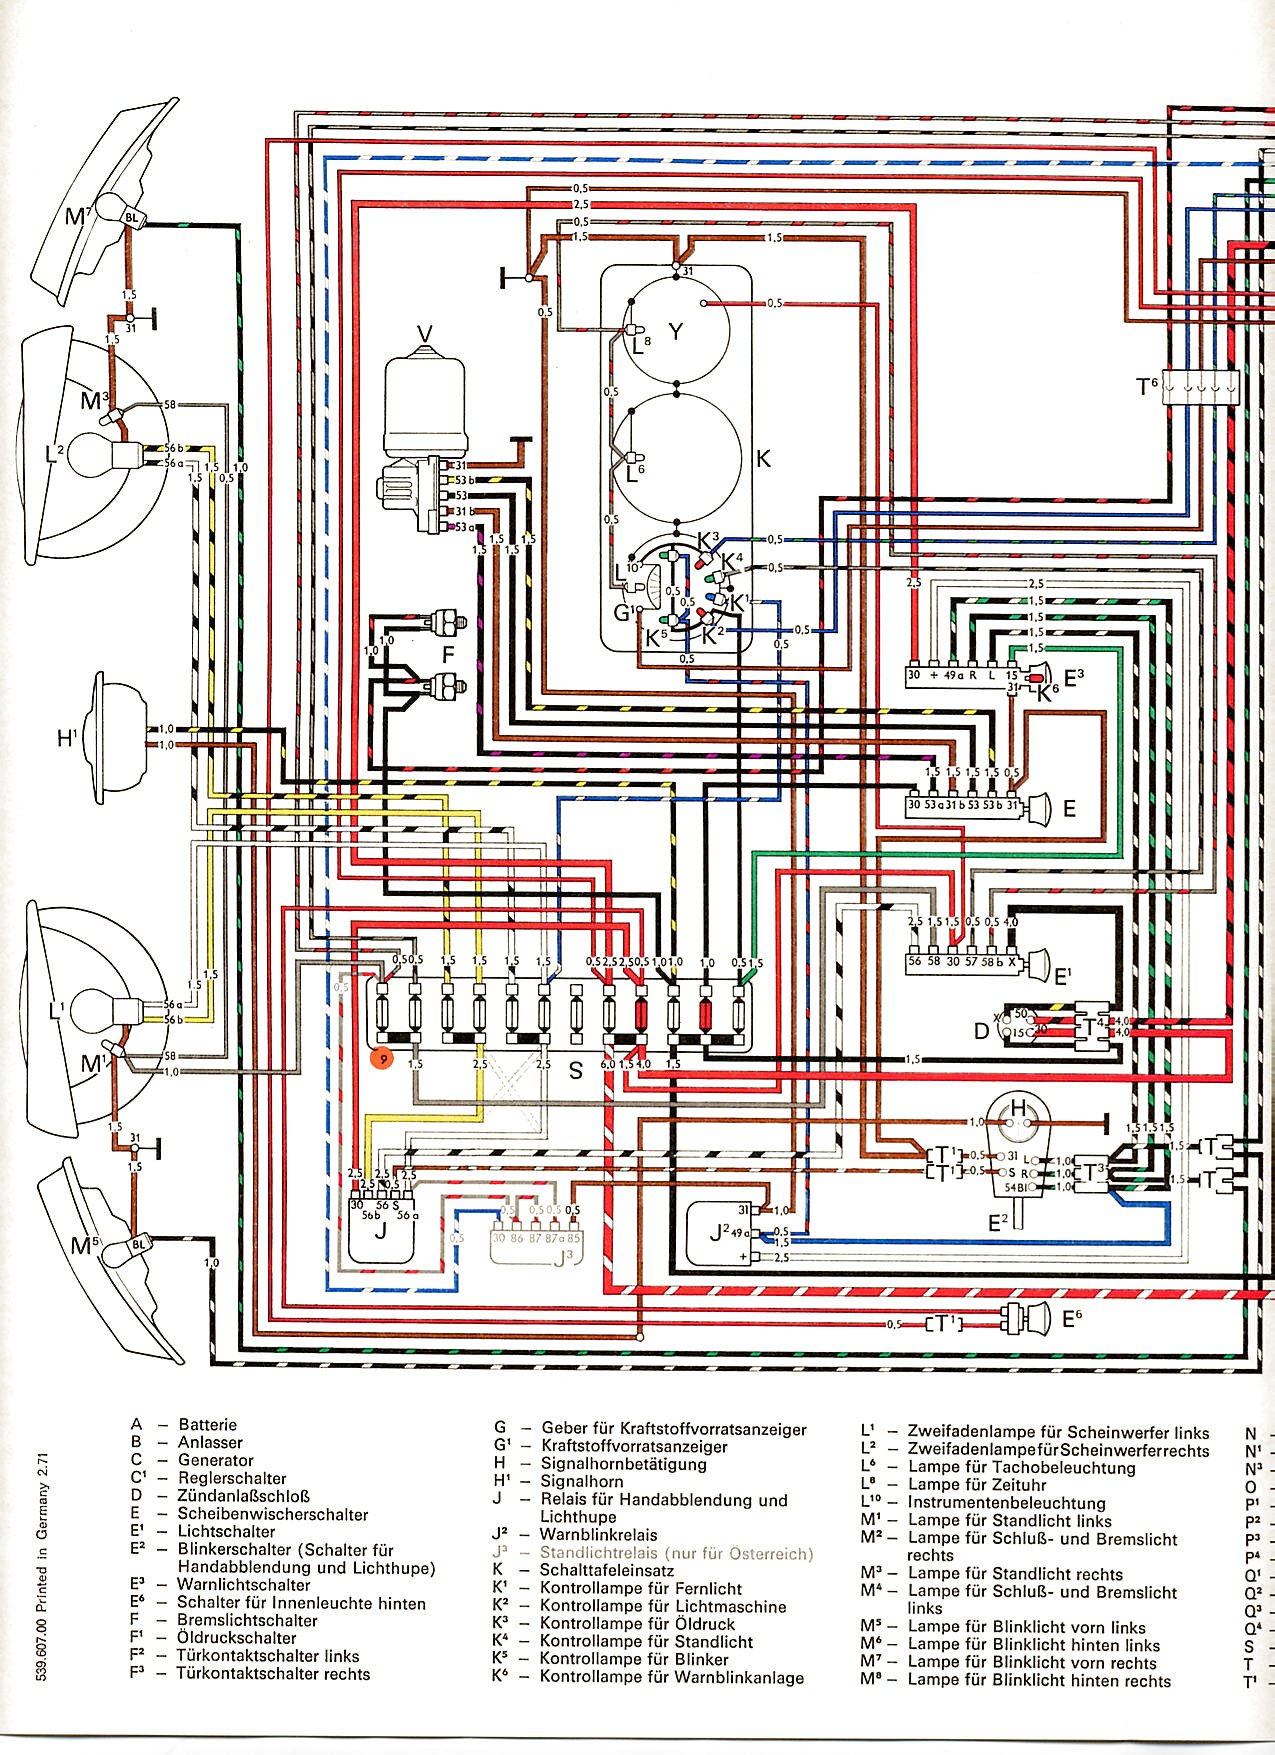 Vintagebus vw bus and other wiring diagrams com vw bus and other wiring diagrams swarovskicordoba